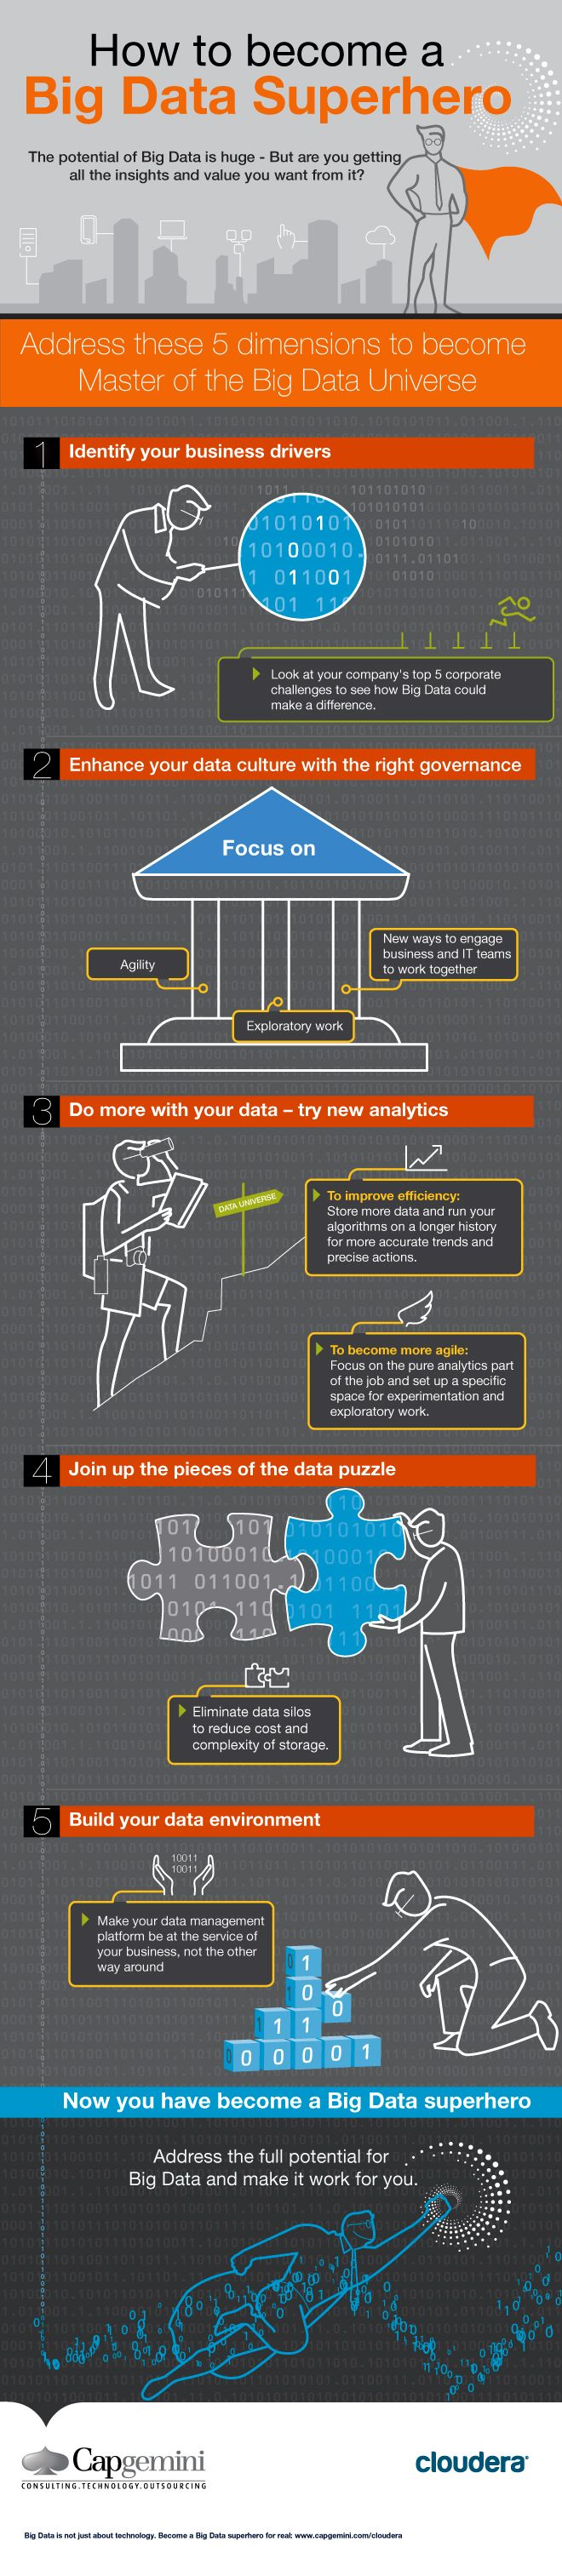 Big data isn't just about technology. 5 dimensions for organizations to master their big data universe